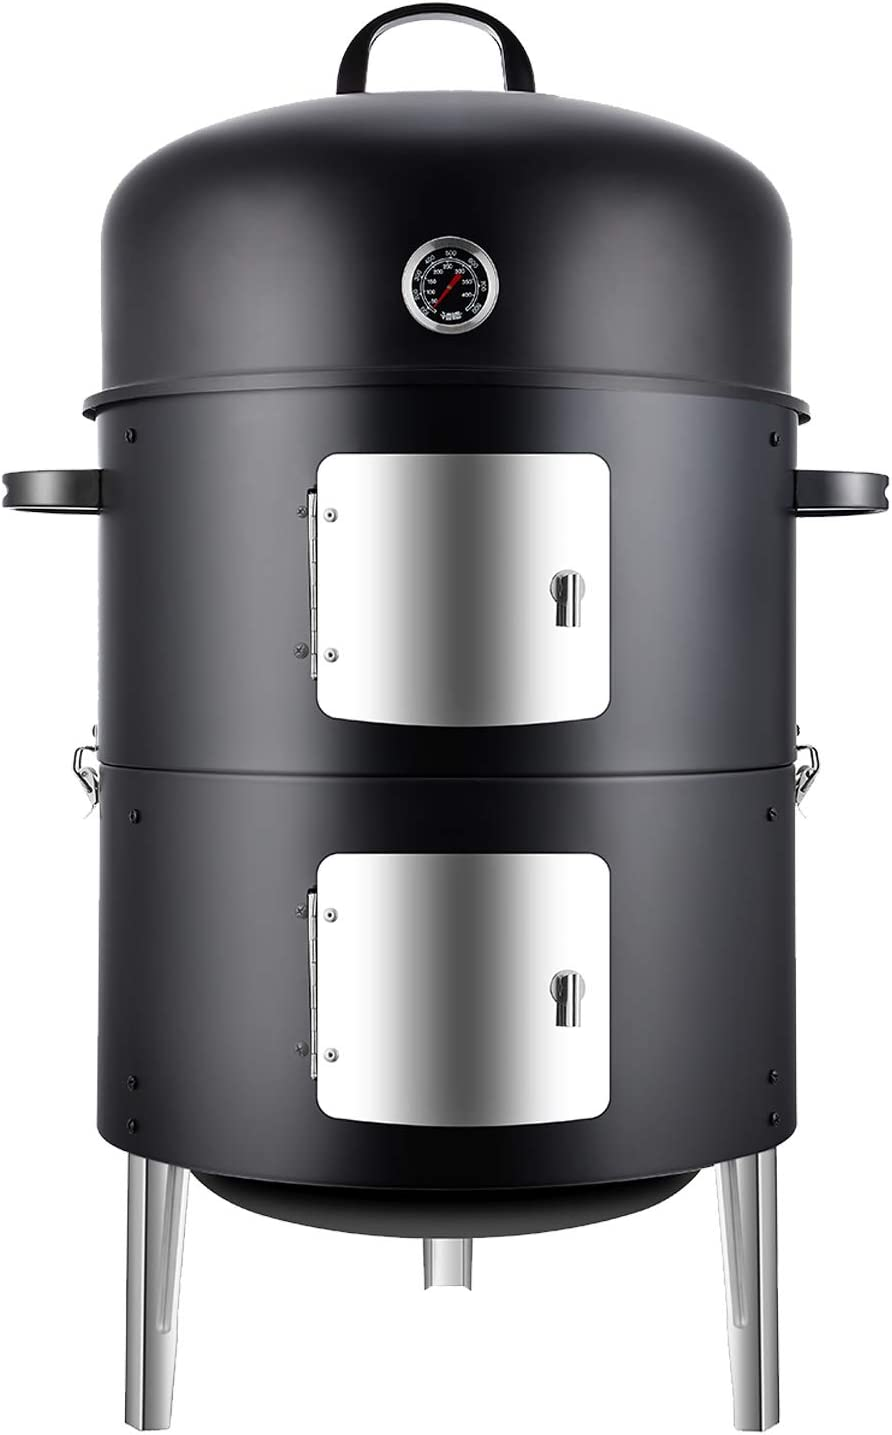 Realcook Vertical 17 Inch Steel Duty Smoker Animer and price revision Roun Heavy Attention brand Charcoal